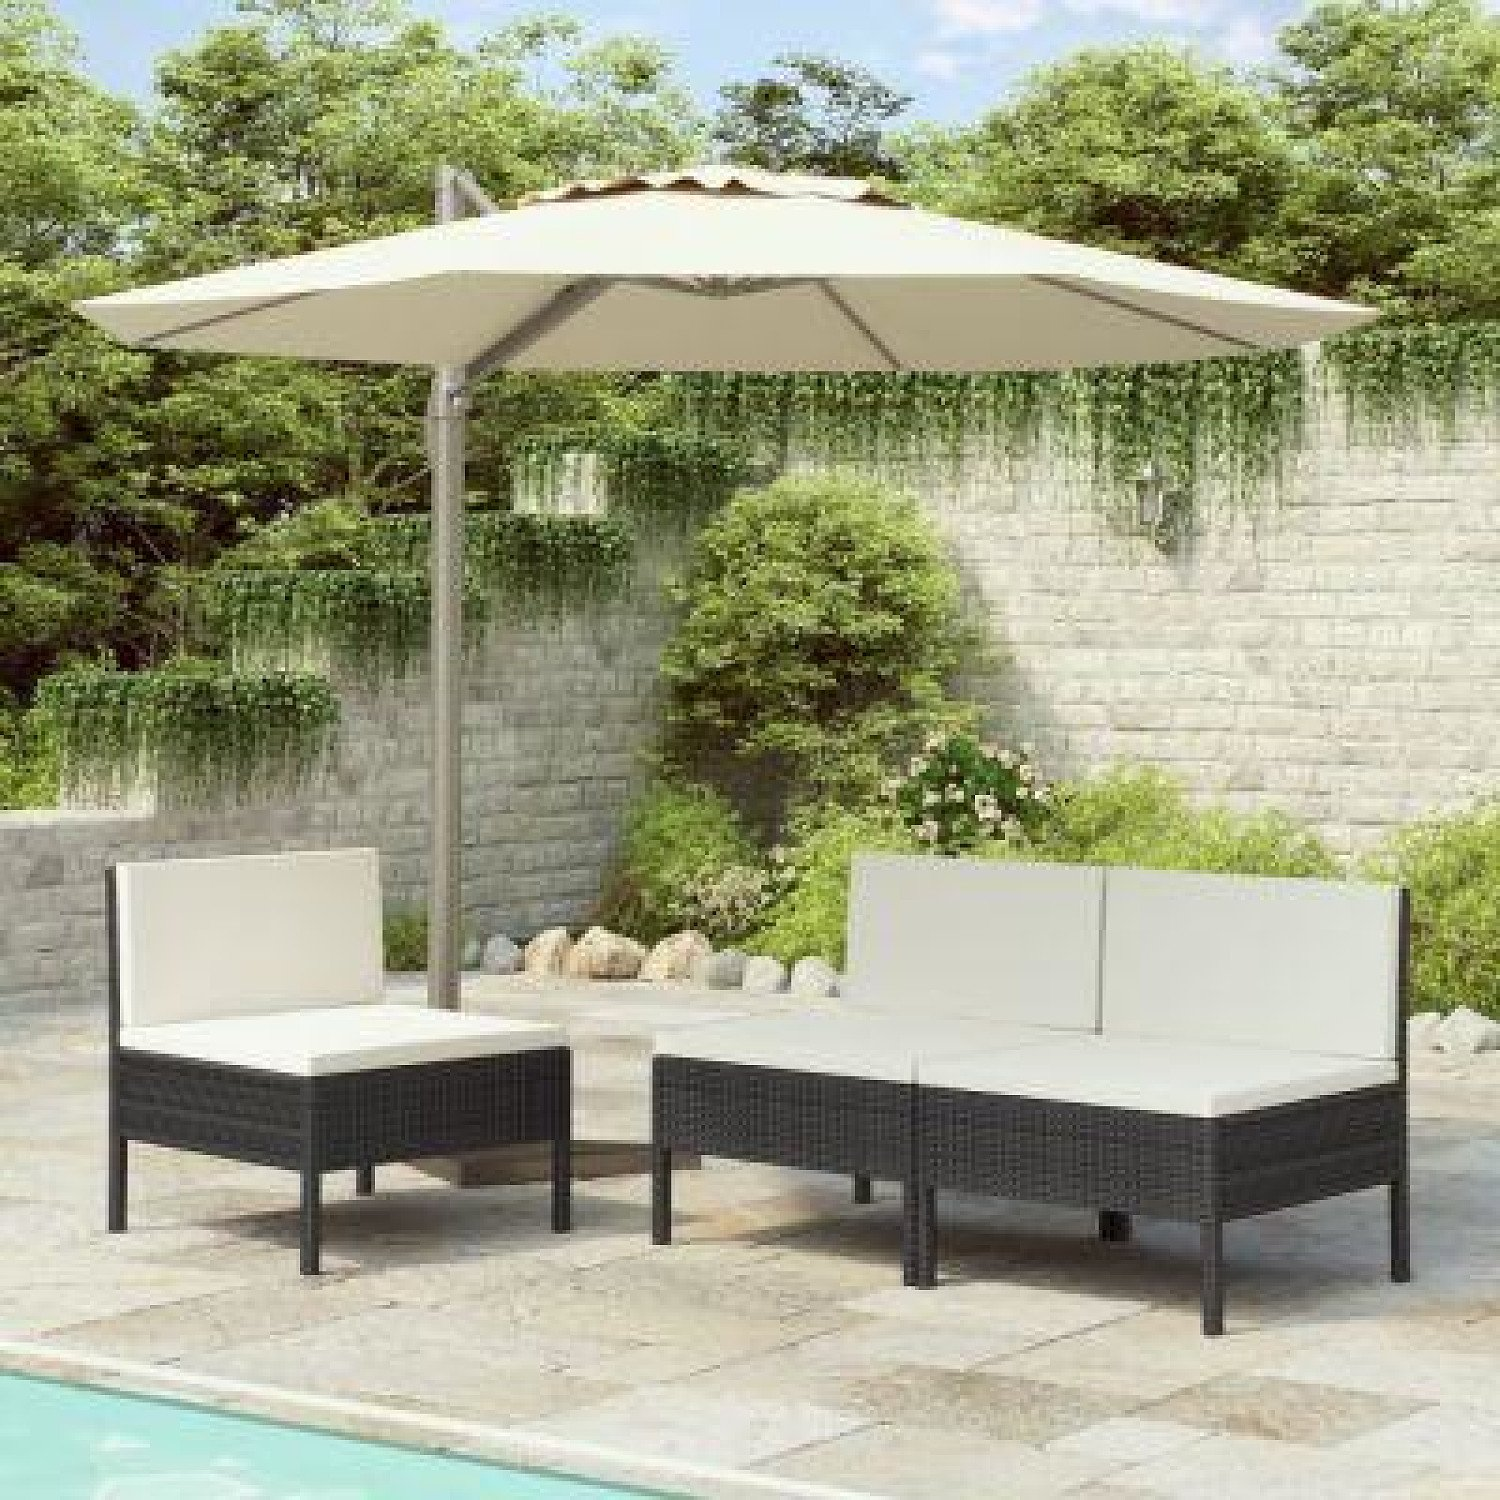 GARDEN CHAIRS 3PCS WITH CUSHIONS POLY RATTAN - Free Delivery £235